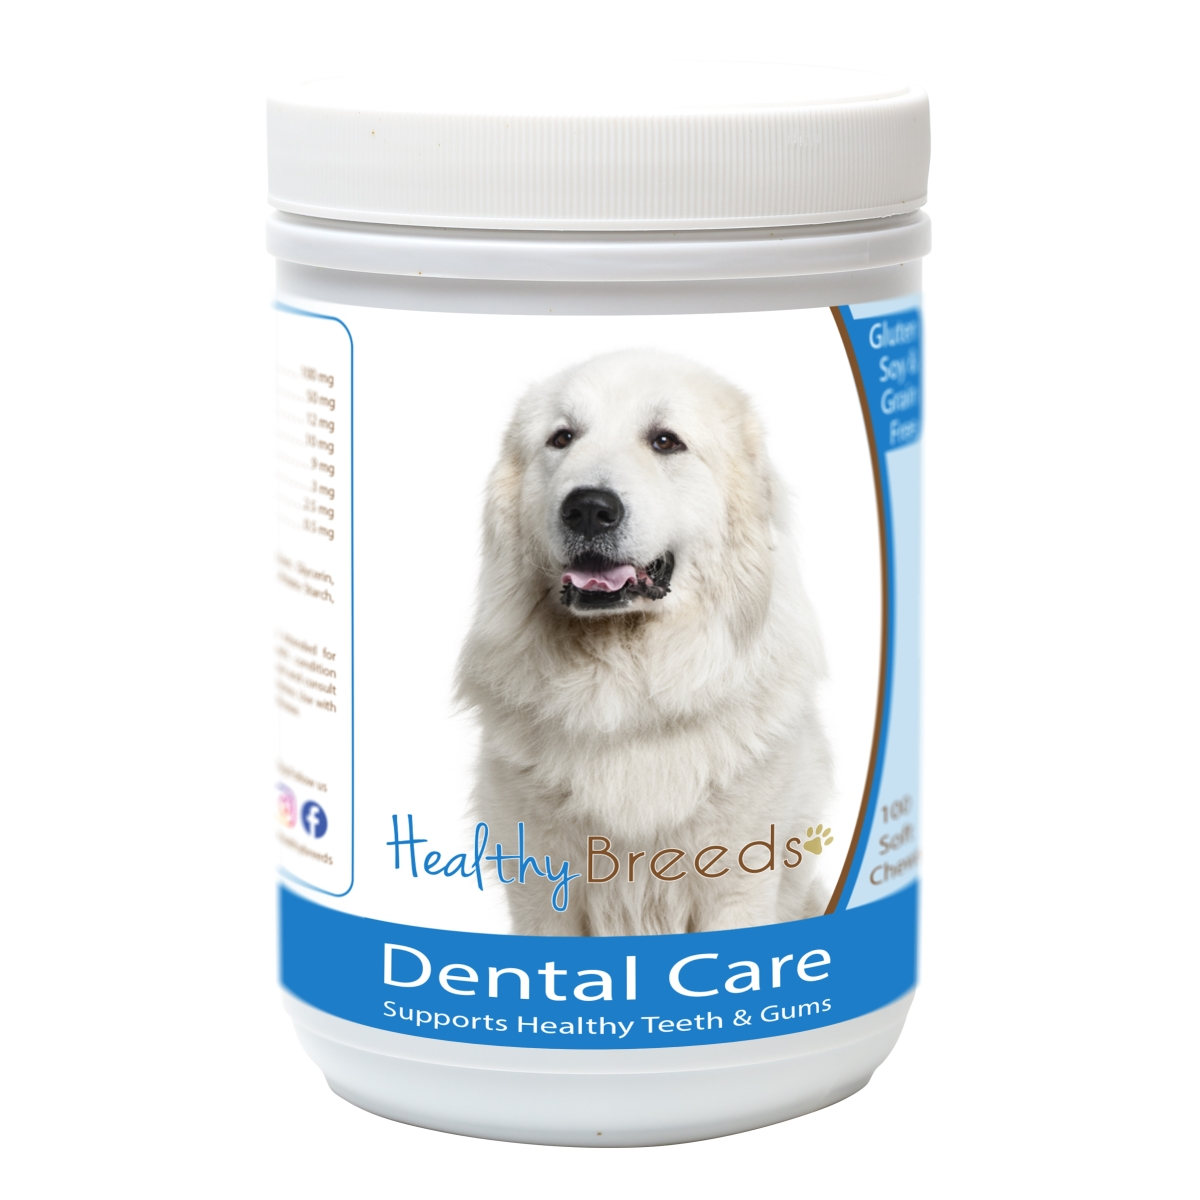 Healthy Breeds 840235162582 Great Pyrenees Breath Care Soft Chews for Dogs - 60 Count